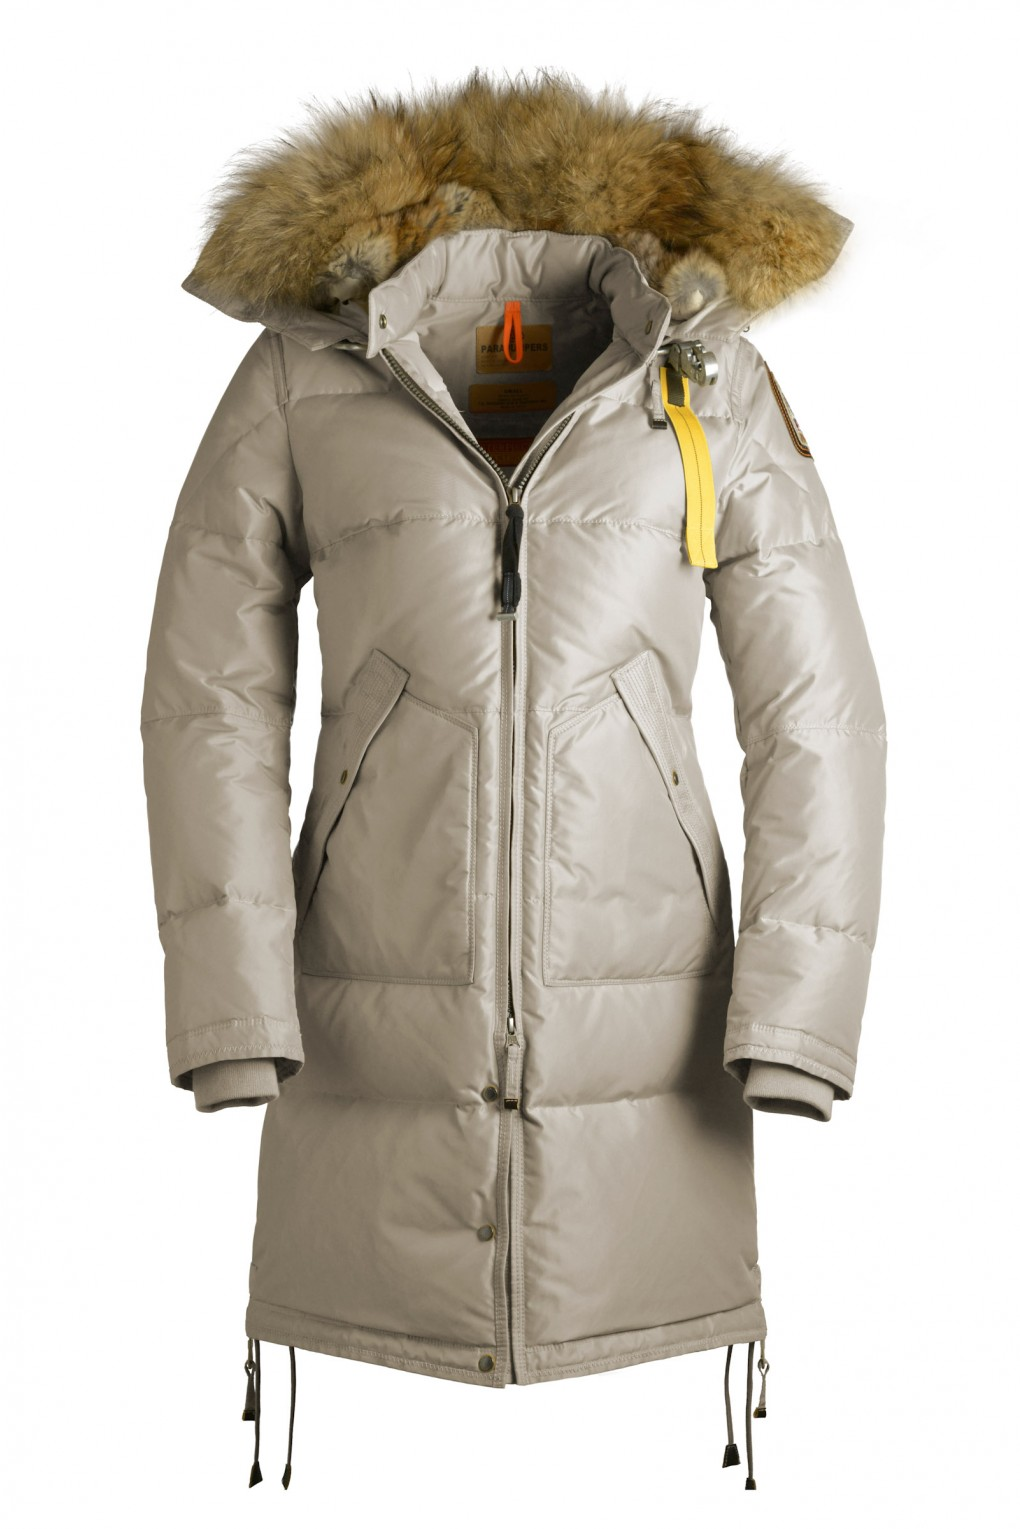 parajumpers LONG BEAR woman outerwear Cappuccino